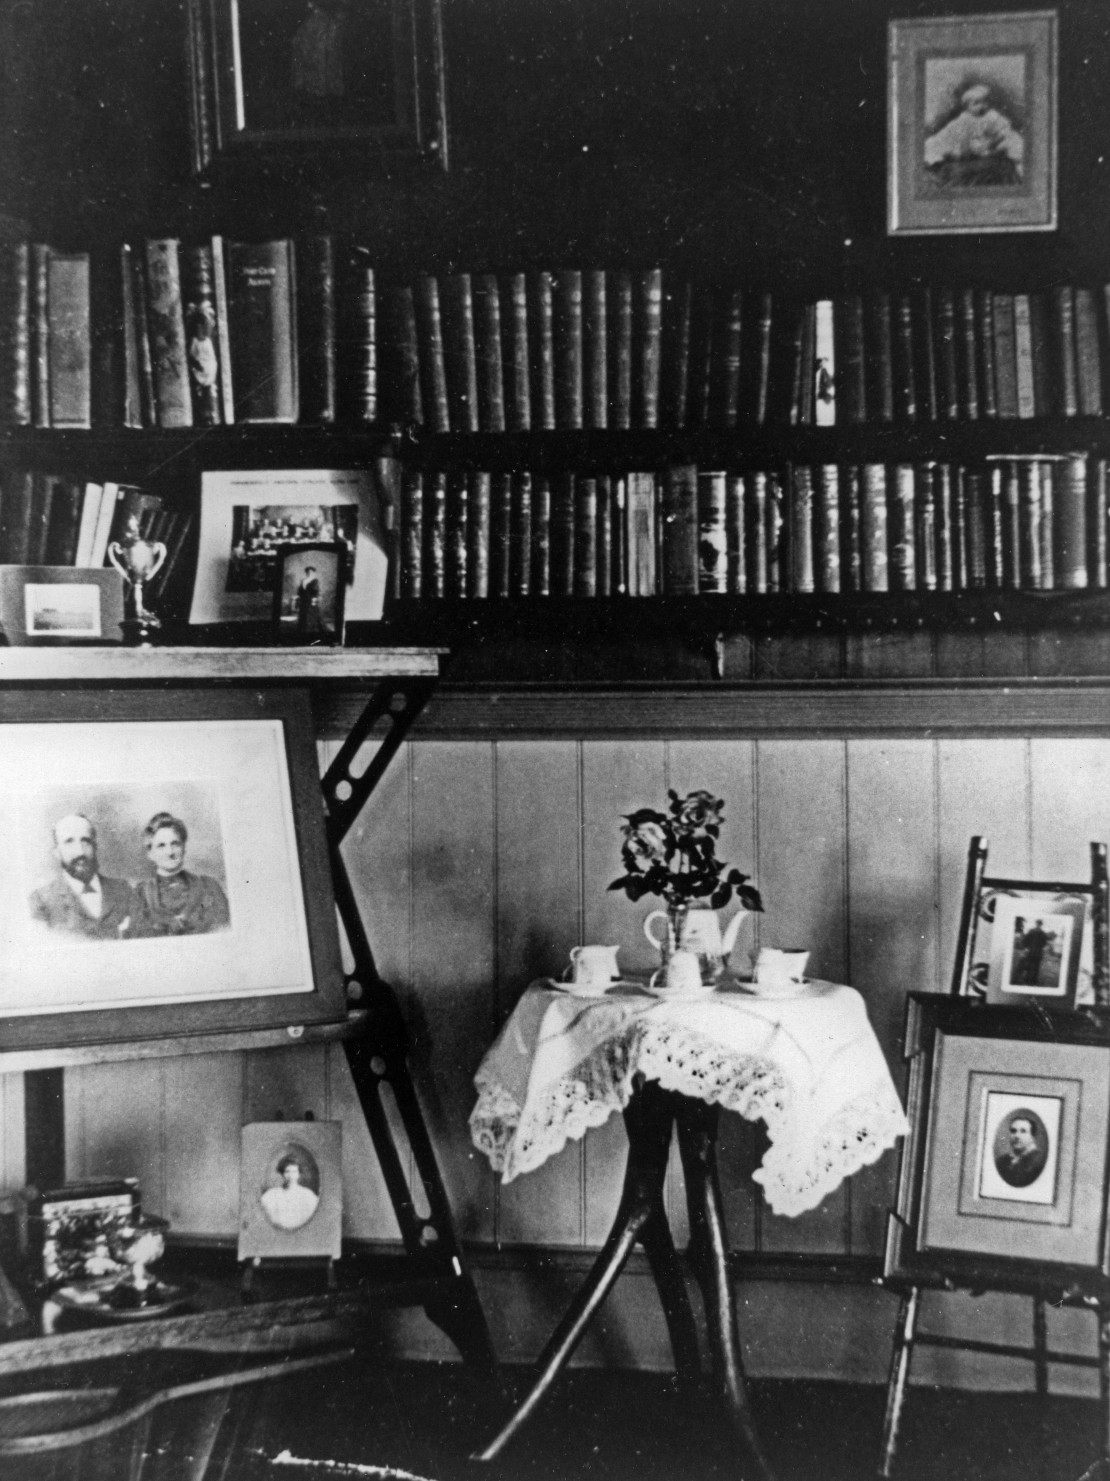 Interior view of a house at Indooroopilly showing a collection of books and family photographs  There is a small table in the centre covered with a lace tablecloth set with teacups and saucers